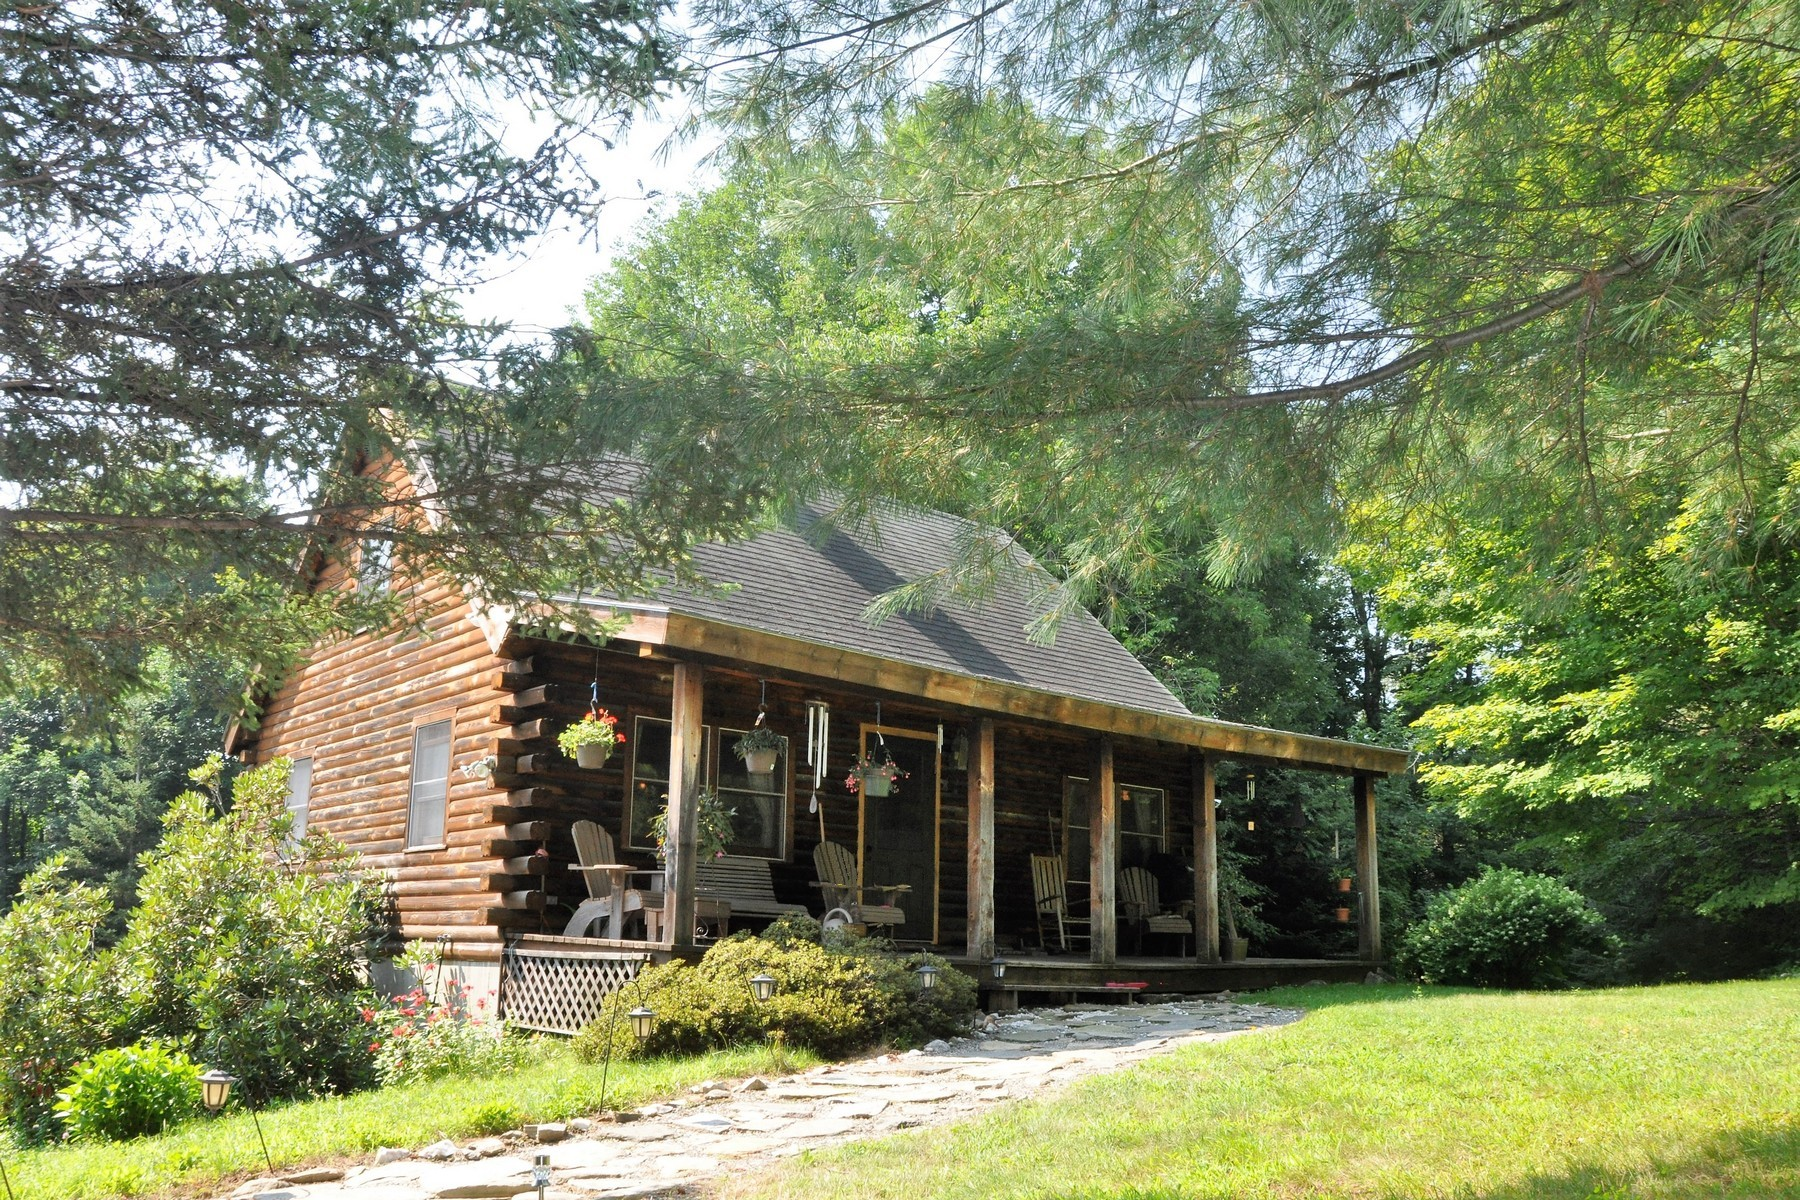 Single Family Home for Sale at Moosehead Log Home on 2+ Acres 1846 Wilmington Cross Rd Whitingham, Vermont 05342 United States